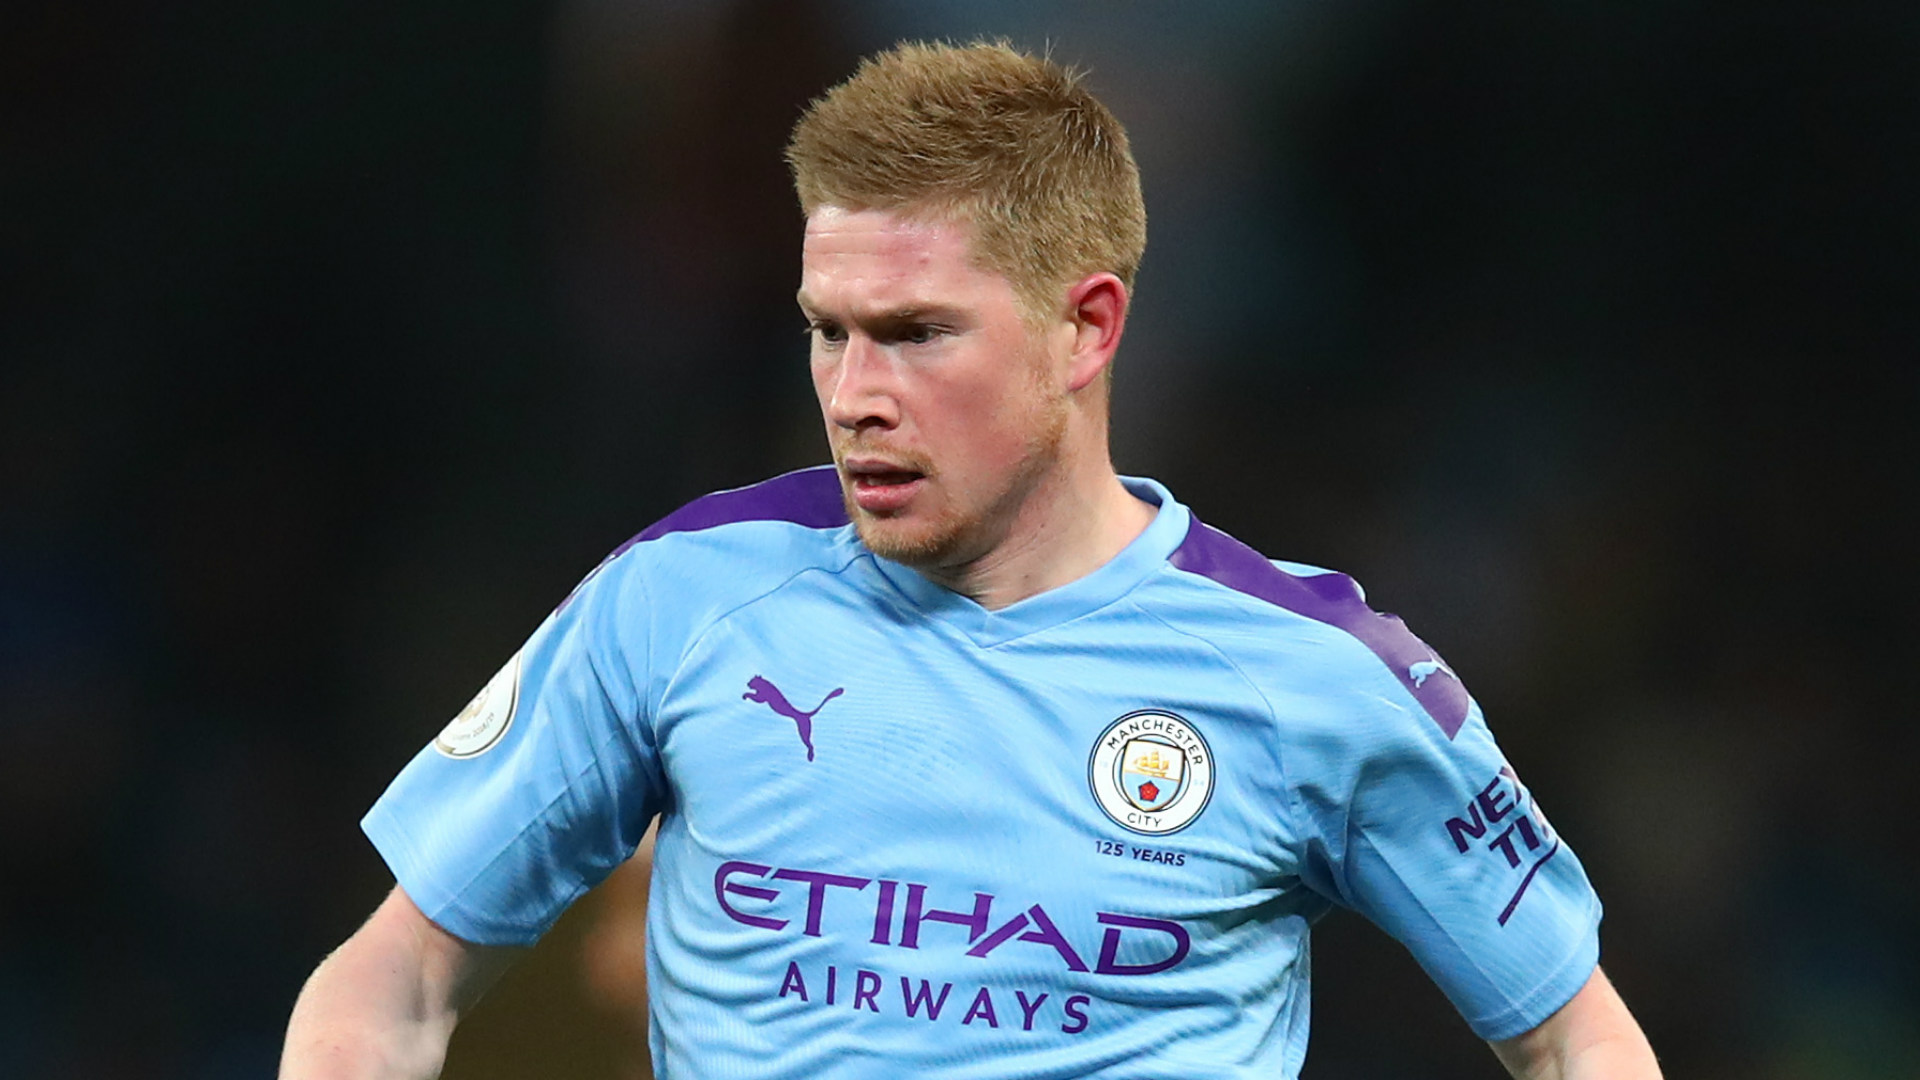 Coronavirus lockdown makes Kevin De Bruyne want to extend career